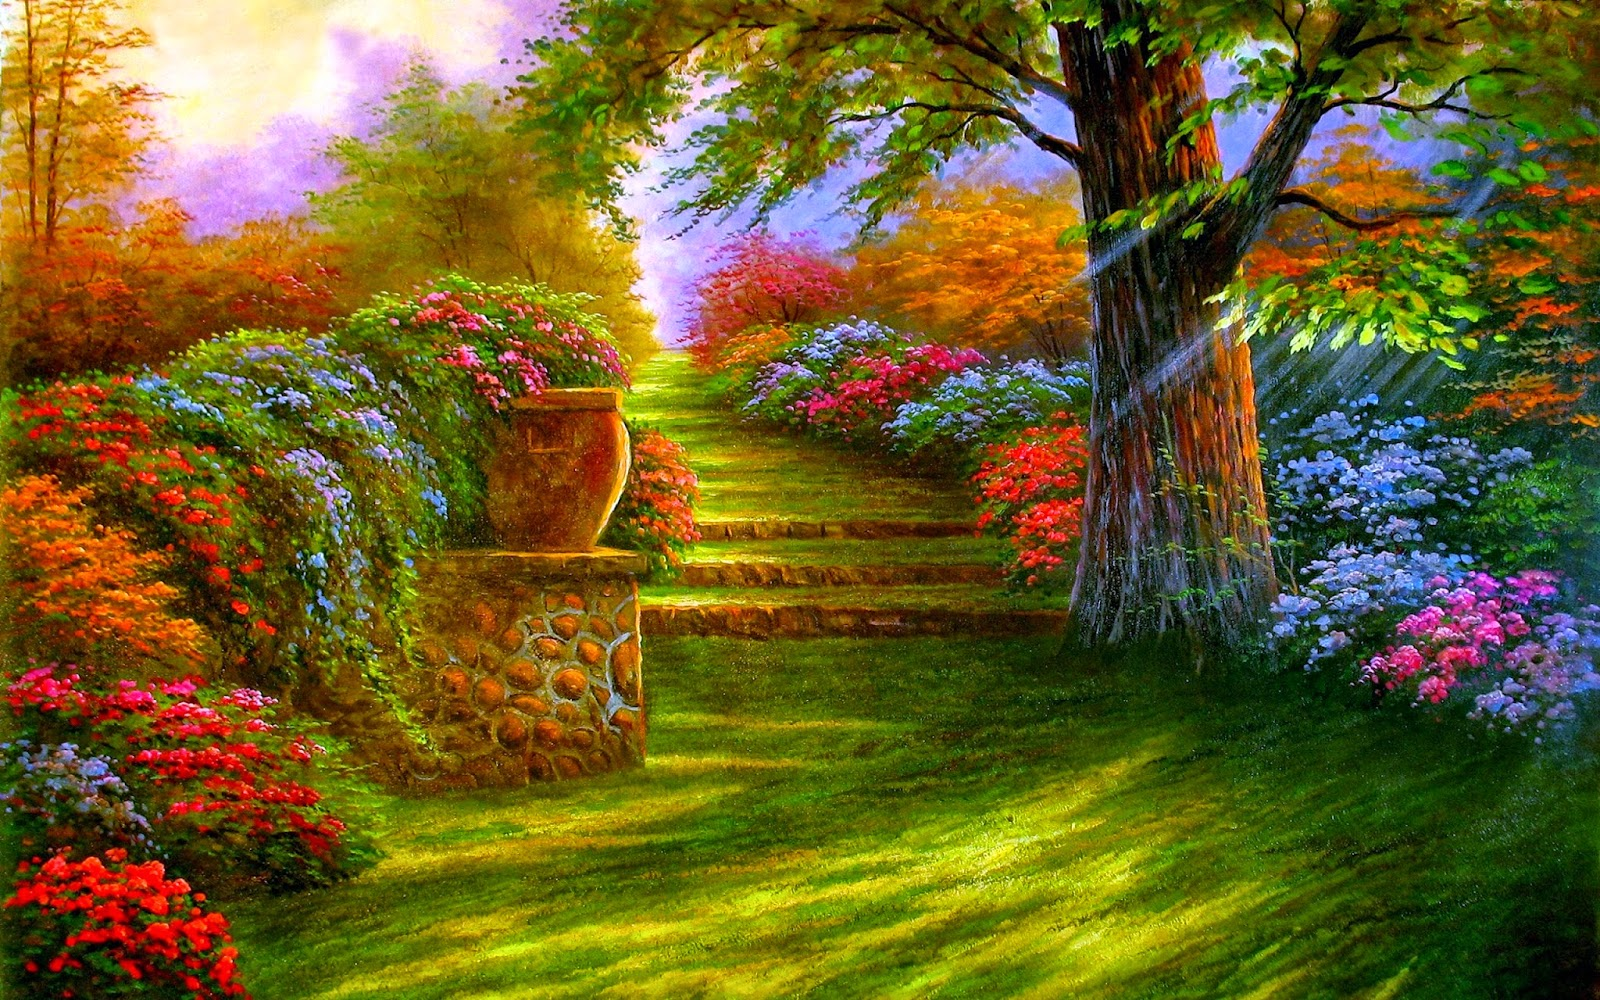 Colorful Garden New Hd Wallpapers - Wallpapers-8860